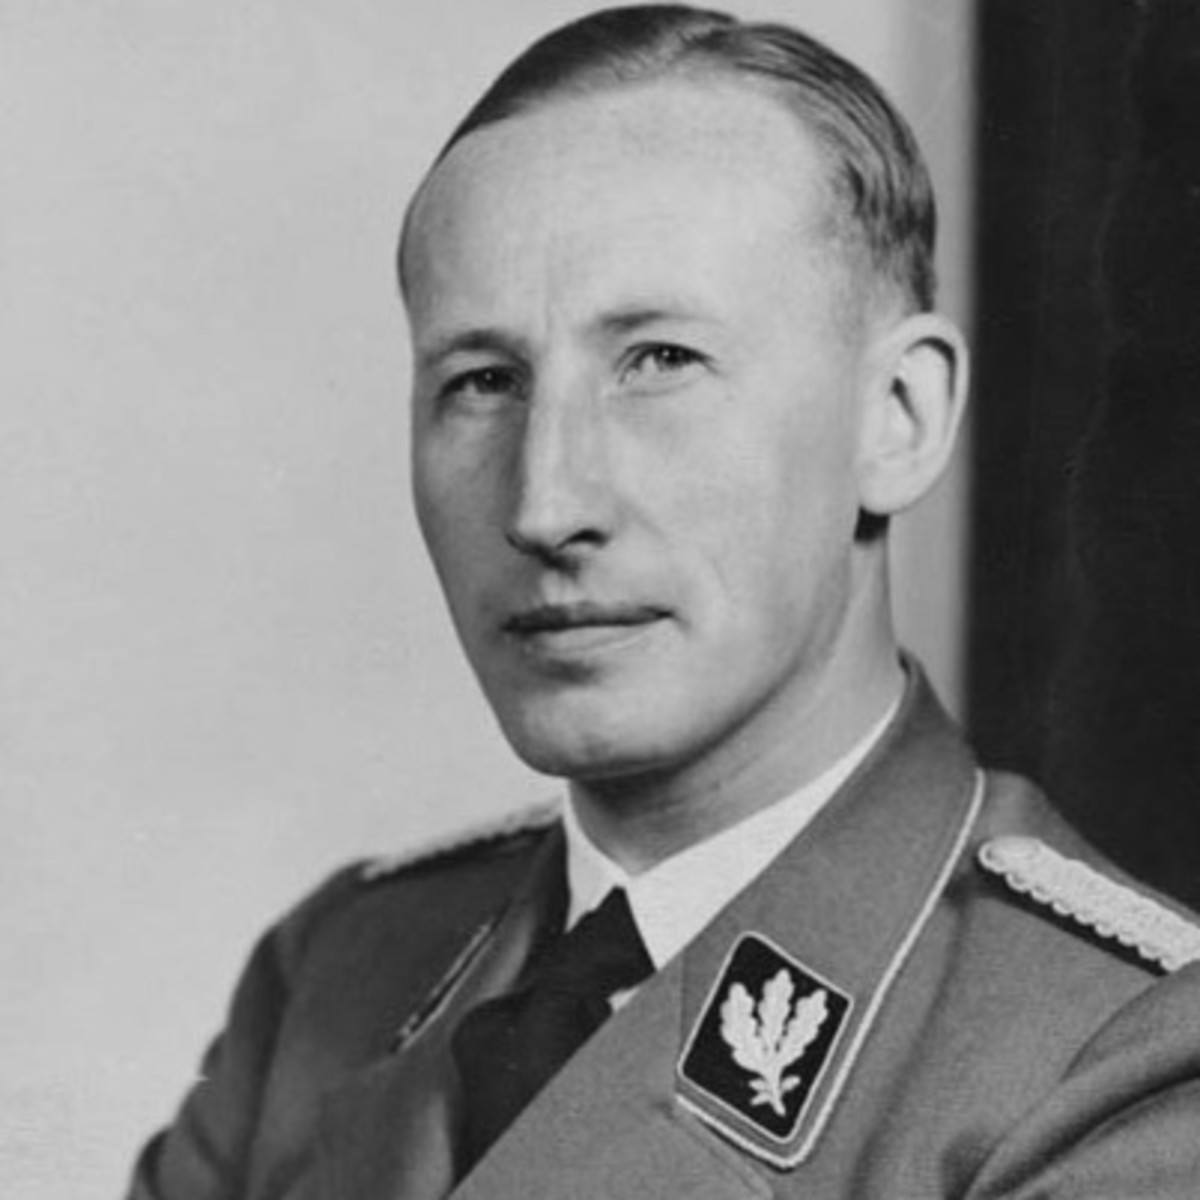 a biography of reinhard tristan eugen heydrich a high ranking german nazi official Reinhard tristan eugen heydrich (7 march 1904 – 4 june 1942) was a high- ranking german nazi official during world war ii, and one of the main architects  of.